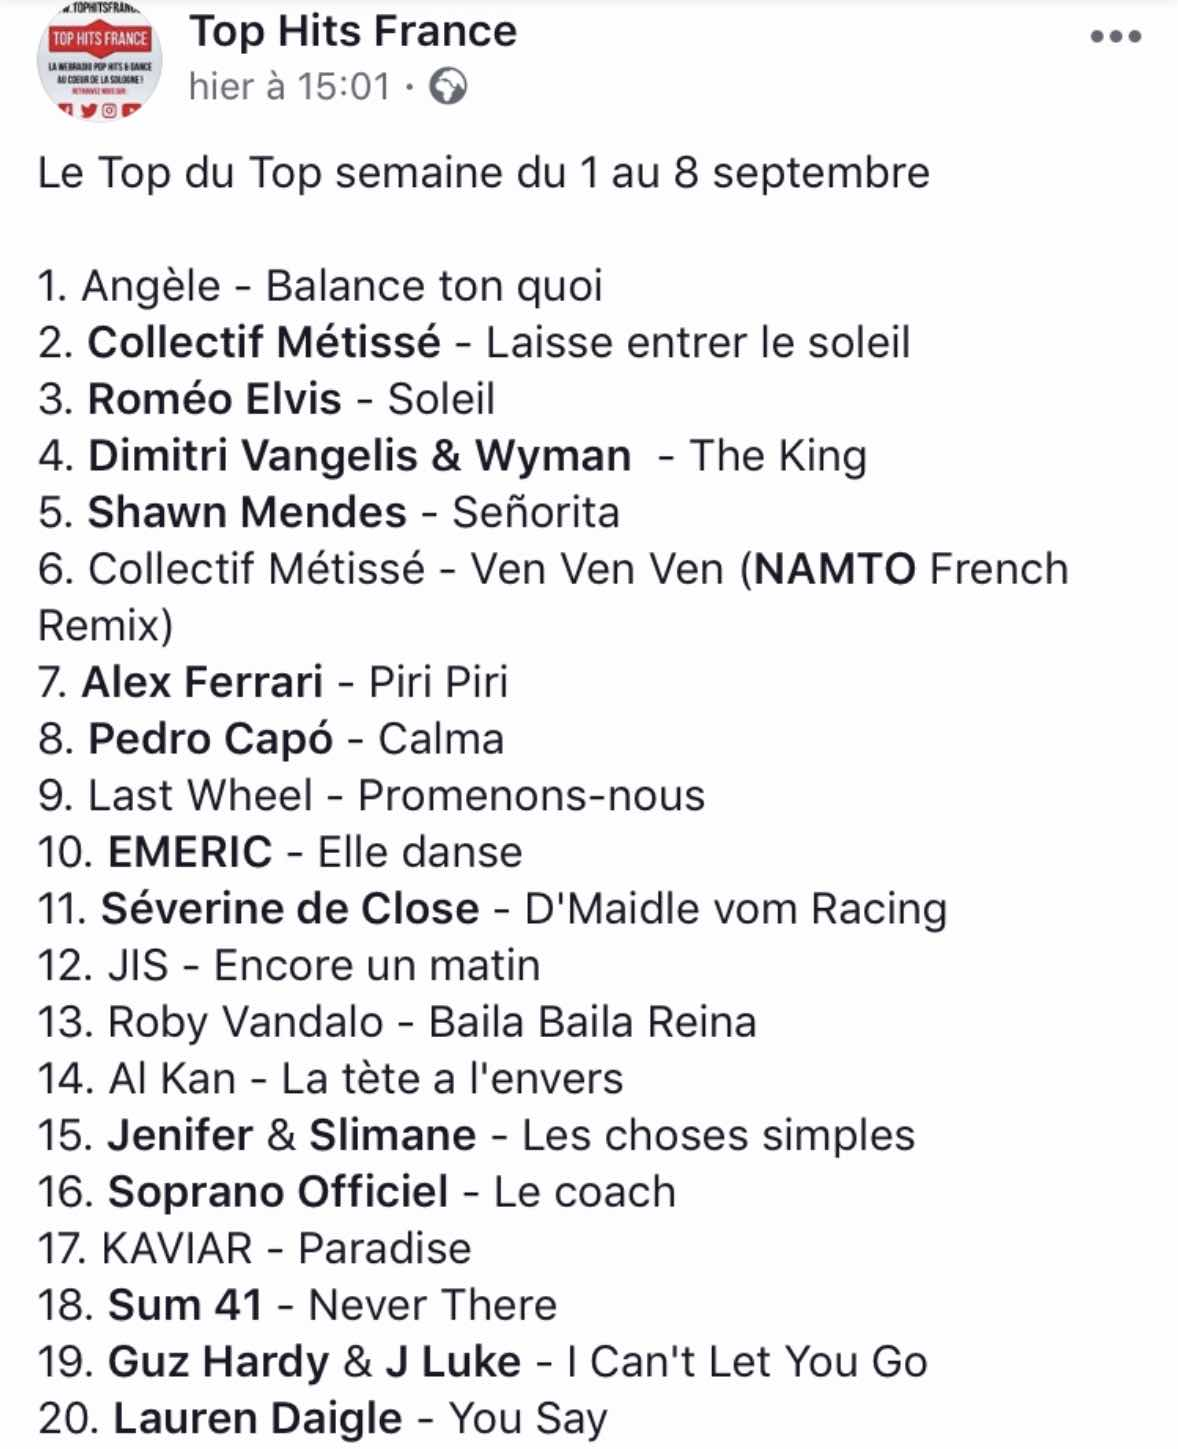 Classement Top Hit France - 08/09/19